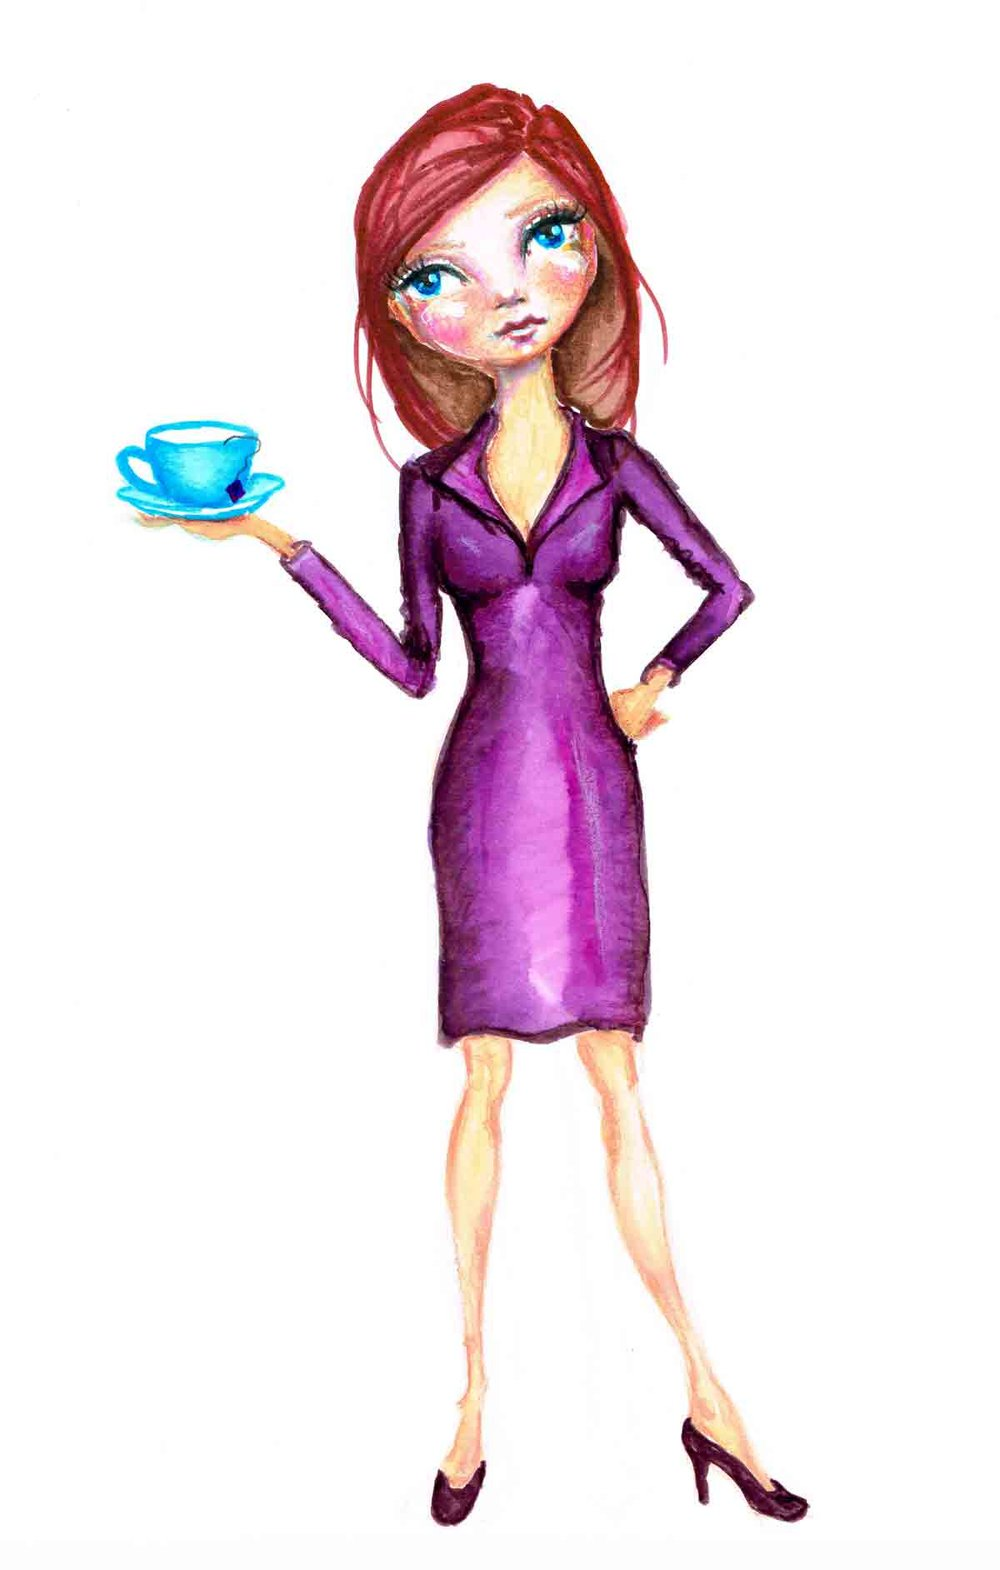 Tea-Time-No-14-teabag-lady-kw.jpg